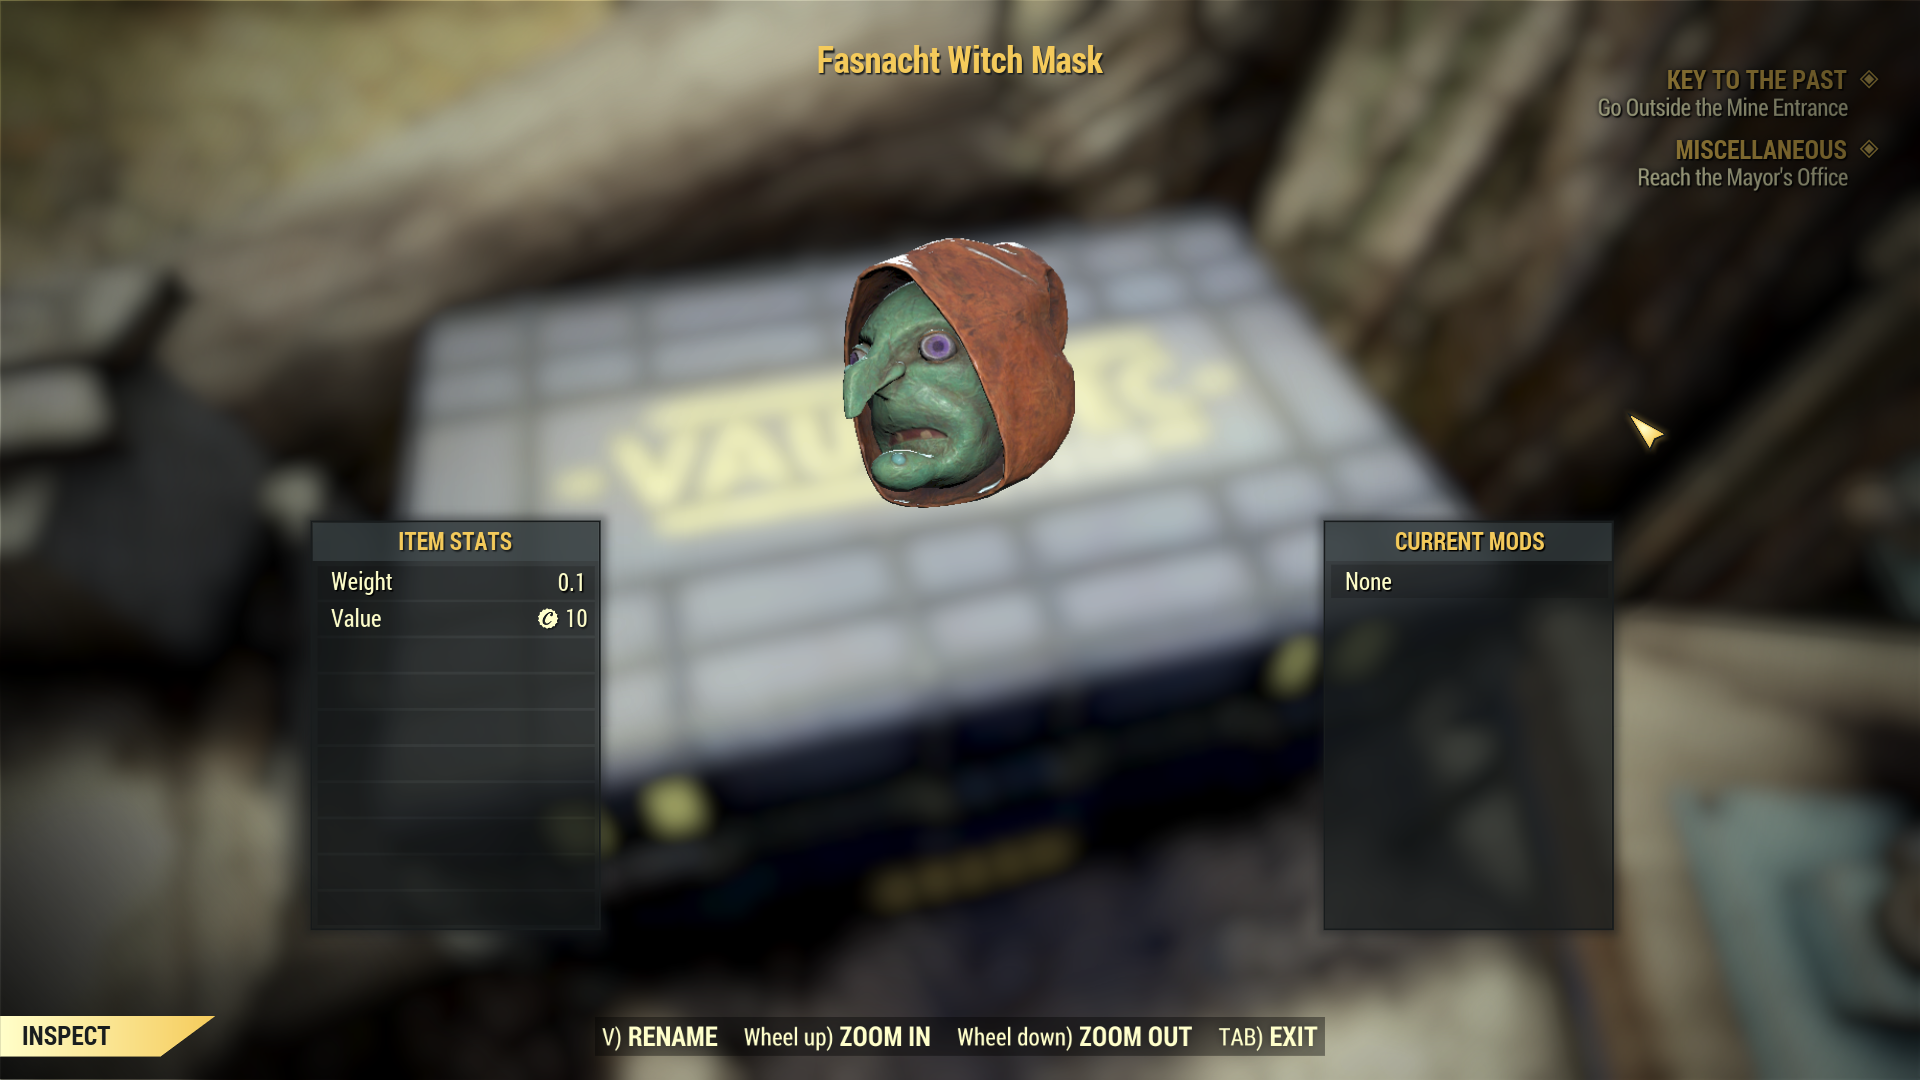 [Rare outfit] Fasnacht Witch Mask